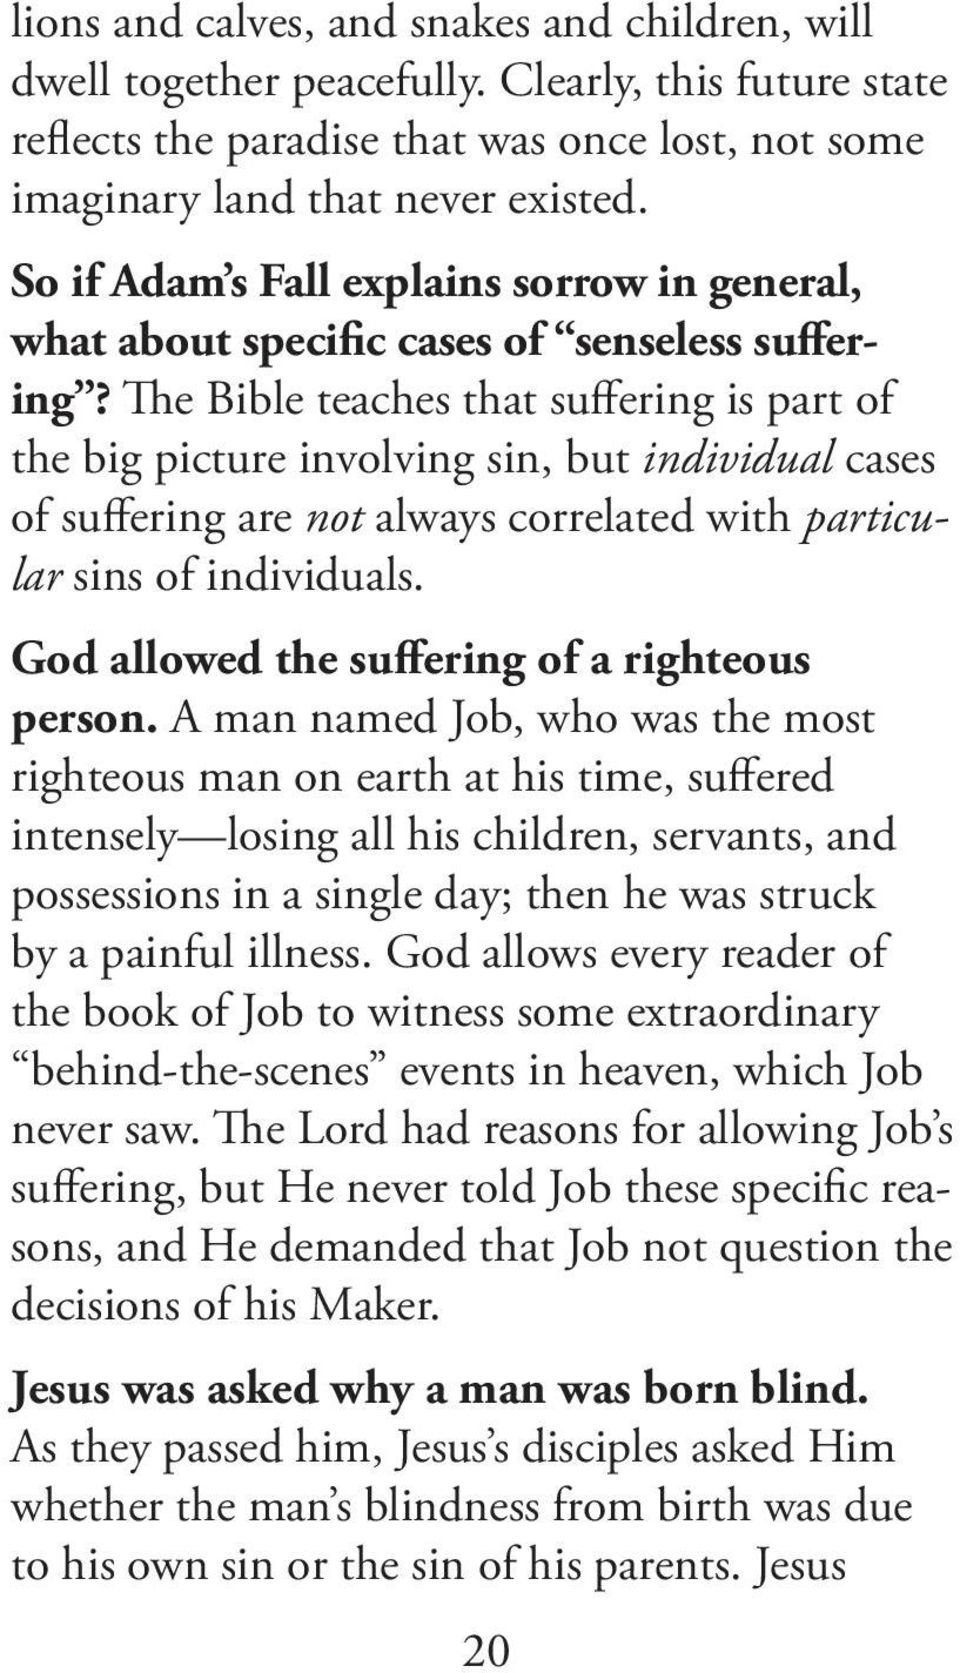 The Bible teaches that suffering is part of the big picture involving sin, but individual cases of suffering are not always correlated with particular sins of individuals.